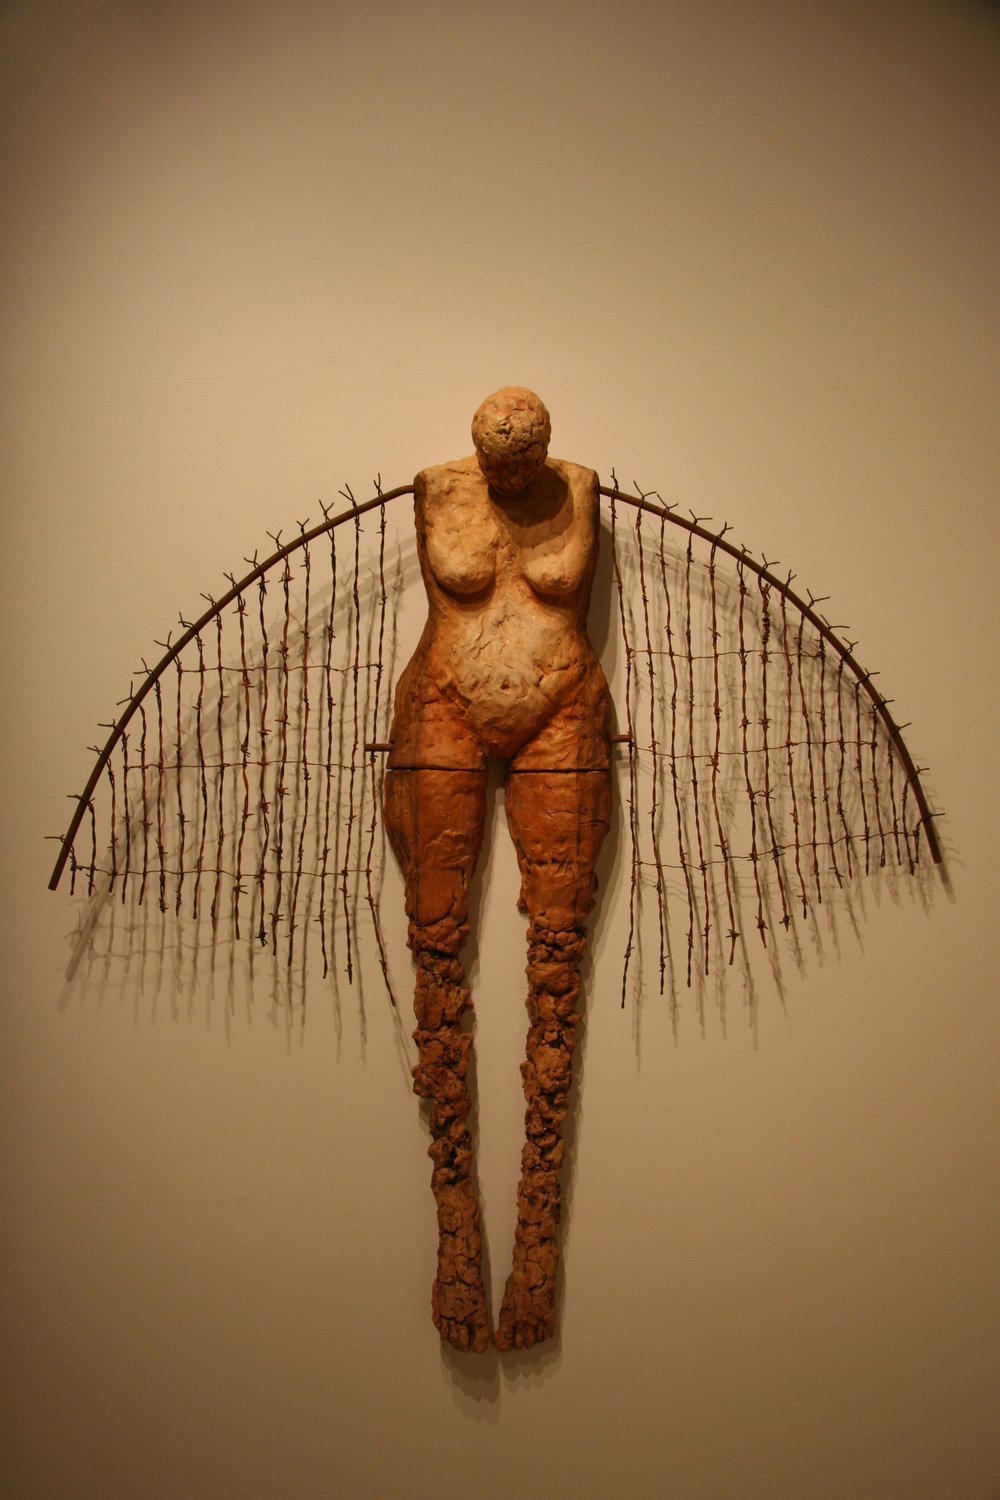 Gently and slowly rising   2001  Ceramic, steel & wire  60 x 53 x 8   The steel and barbed wire of our cages, when transformed into wings, becomes that which lifts us above the suffering and into a life of vital transcendence.